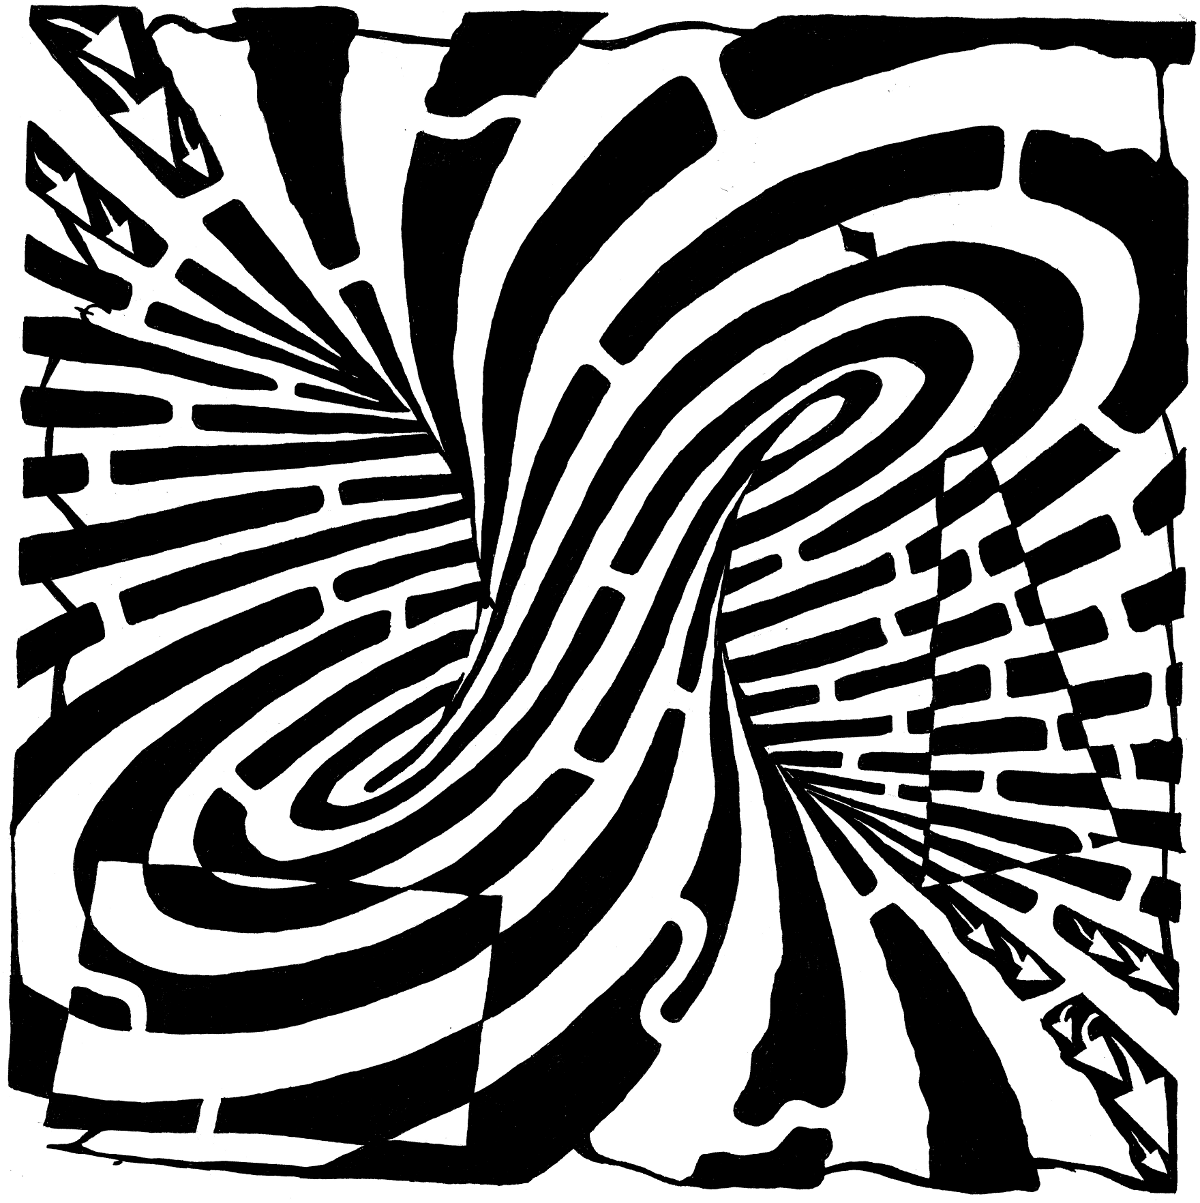 optical illusion illusions maze printable pretty simple eye drawing pages coloring mazes print create artist mobius strip die places before